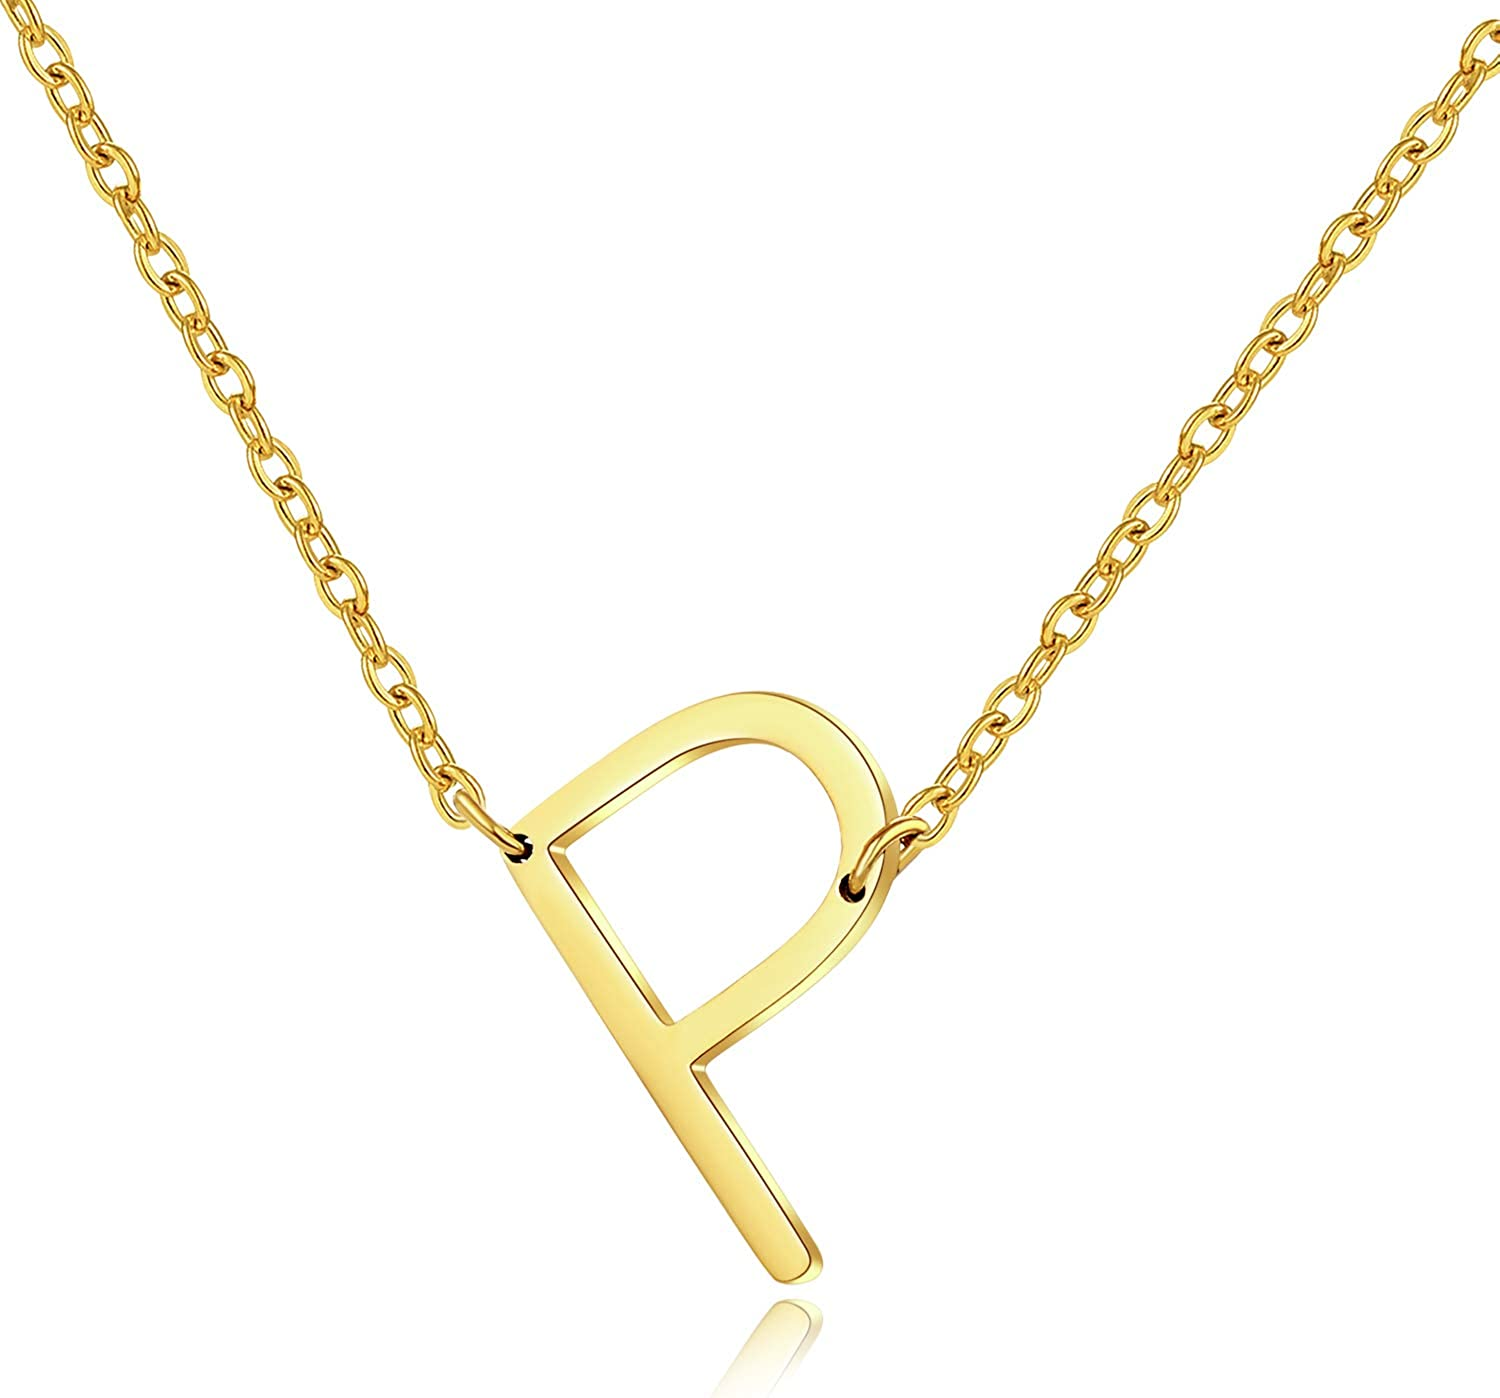 bff for 2 best friend necklace 2 of Rose Gold Initial Necklaces Alphabet Sideways Initial Oversized Letter Necklace 2 bff neckalce